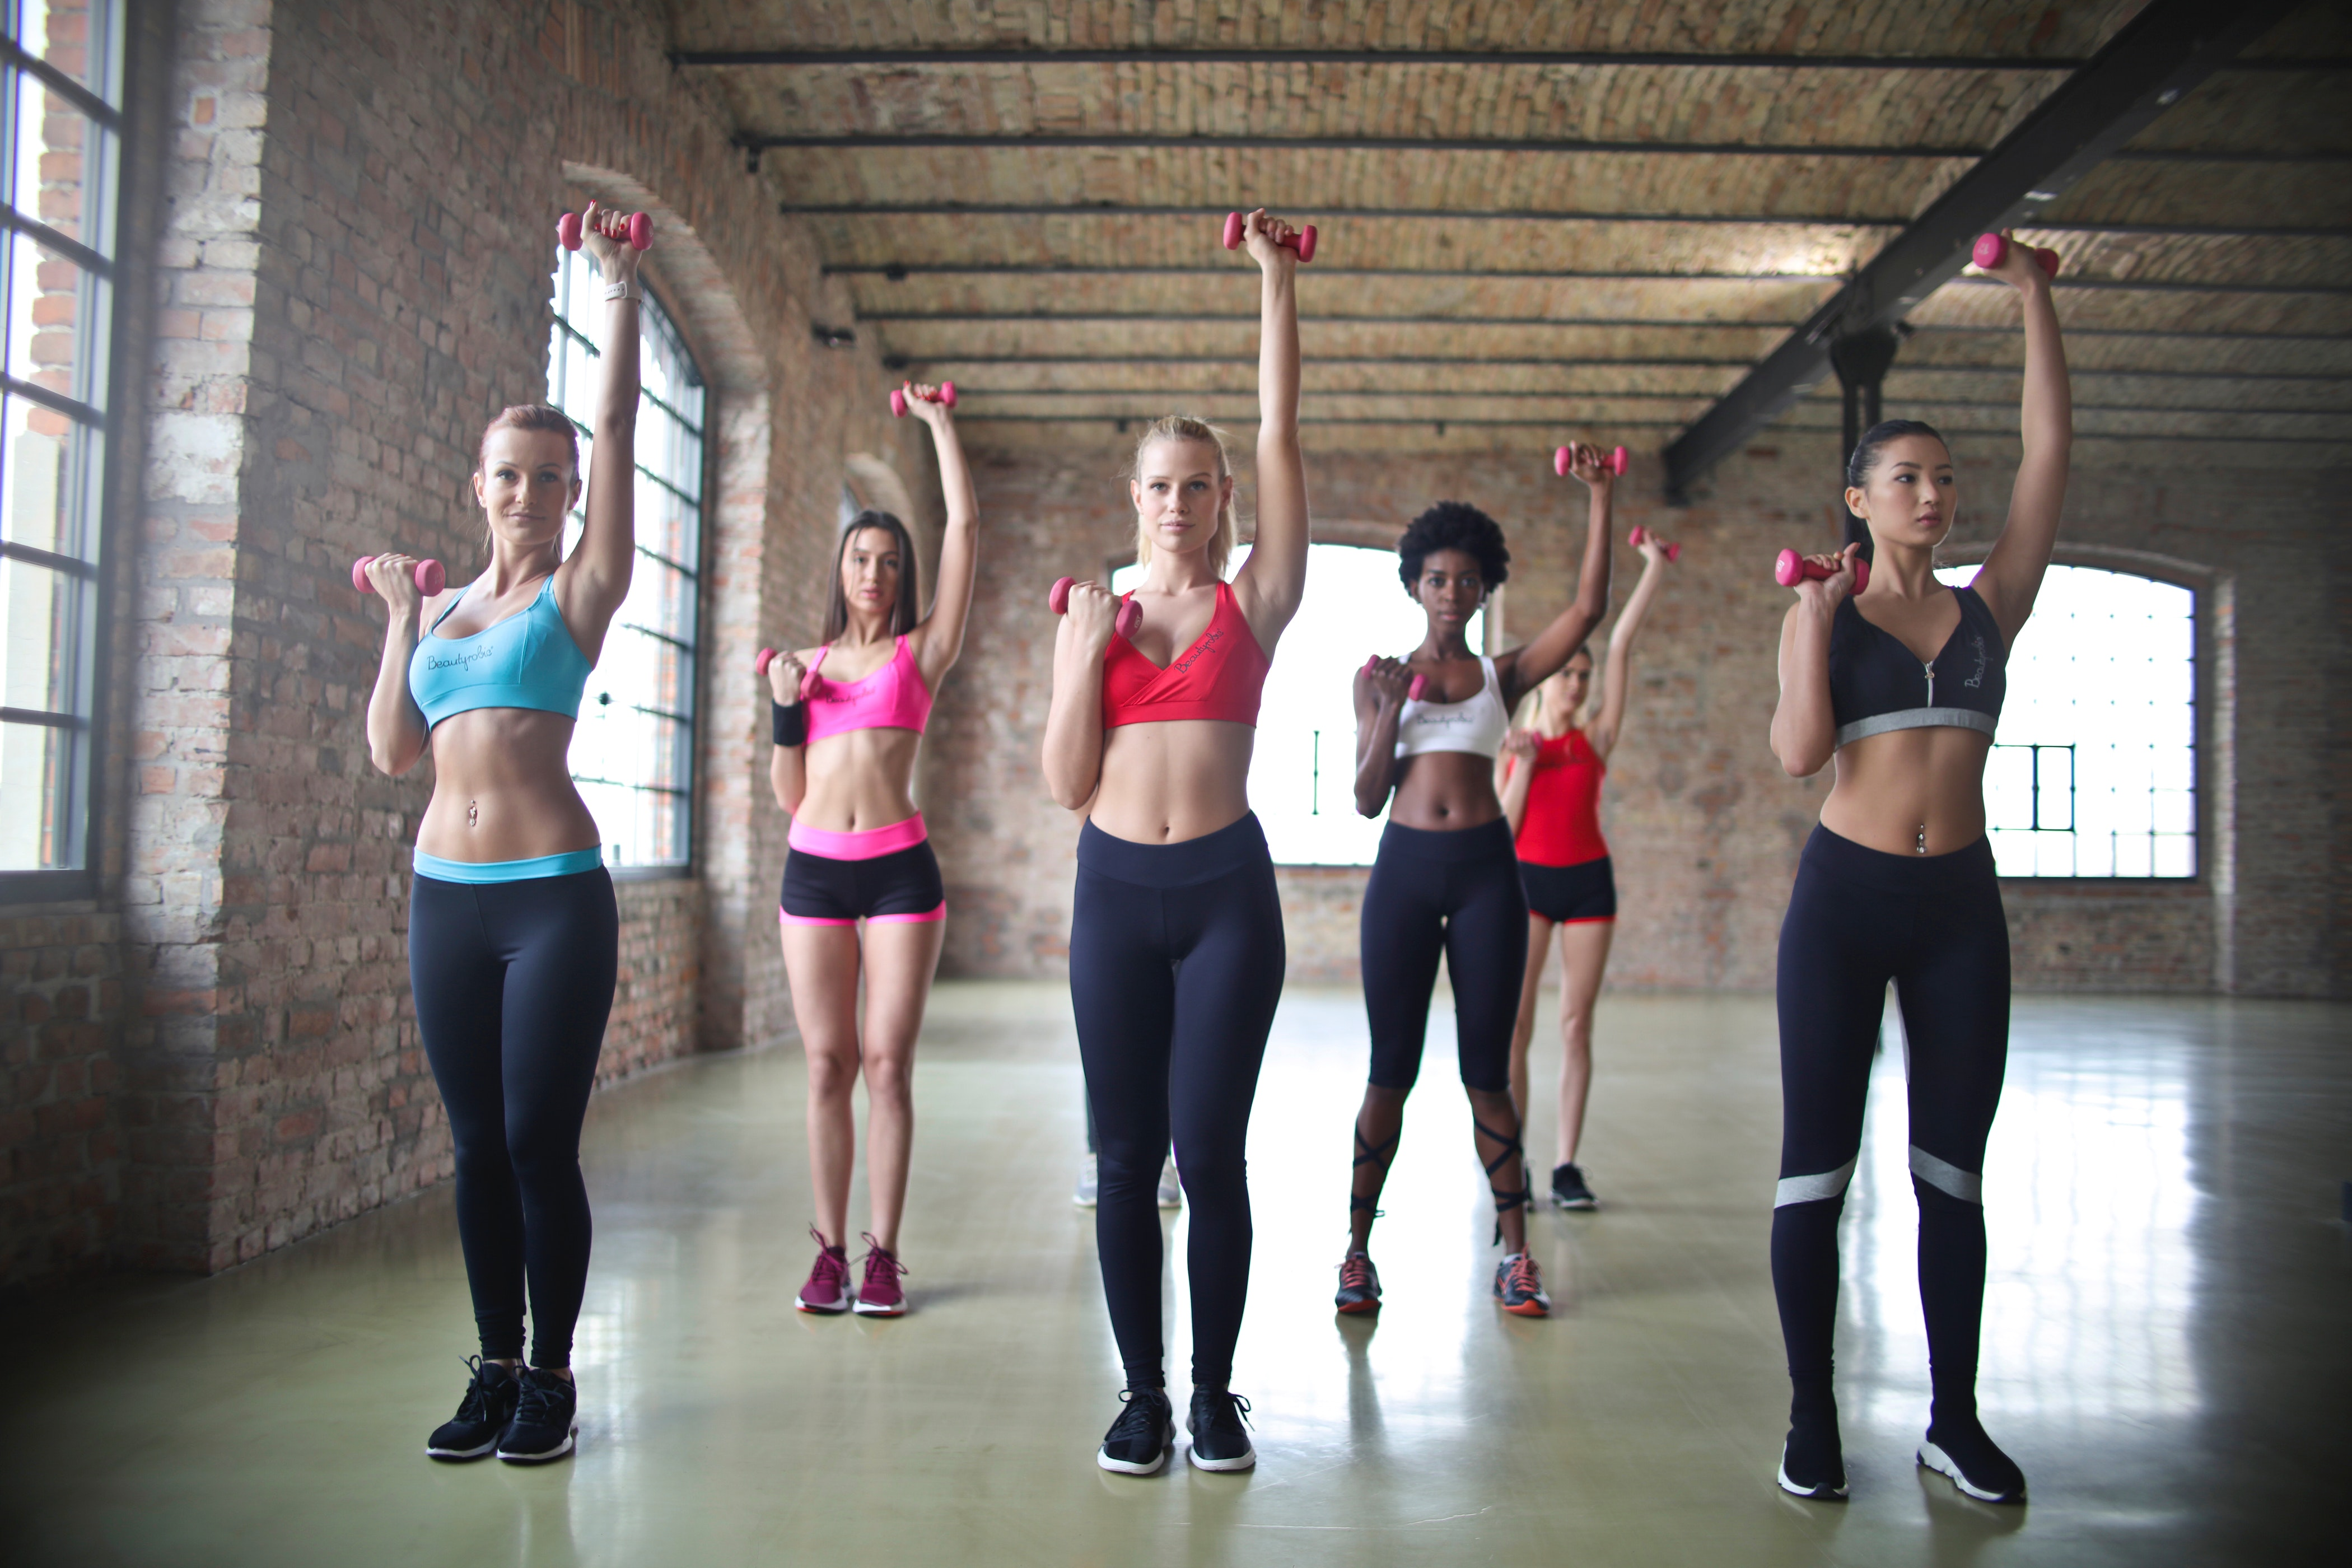 Group exercise motivational class